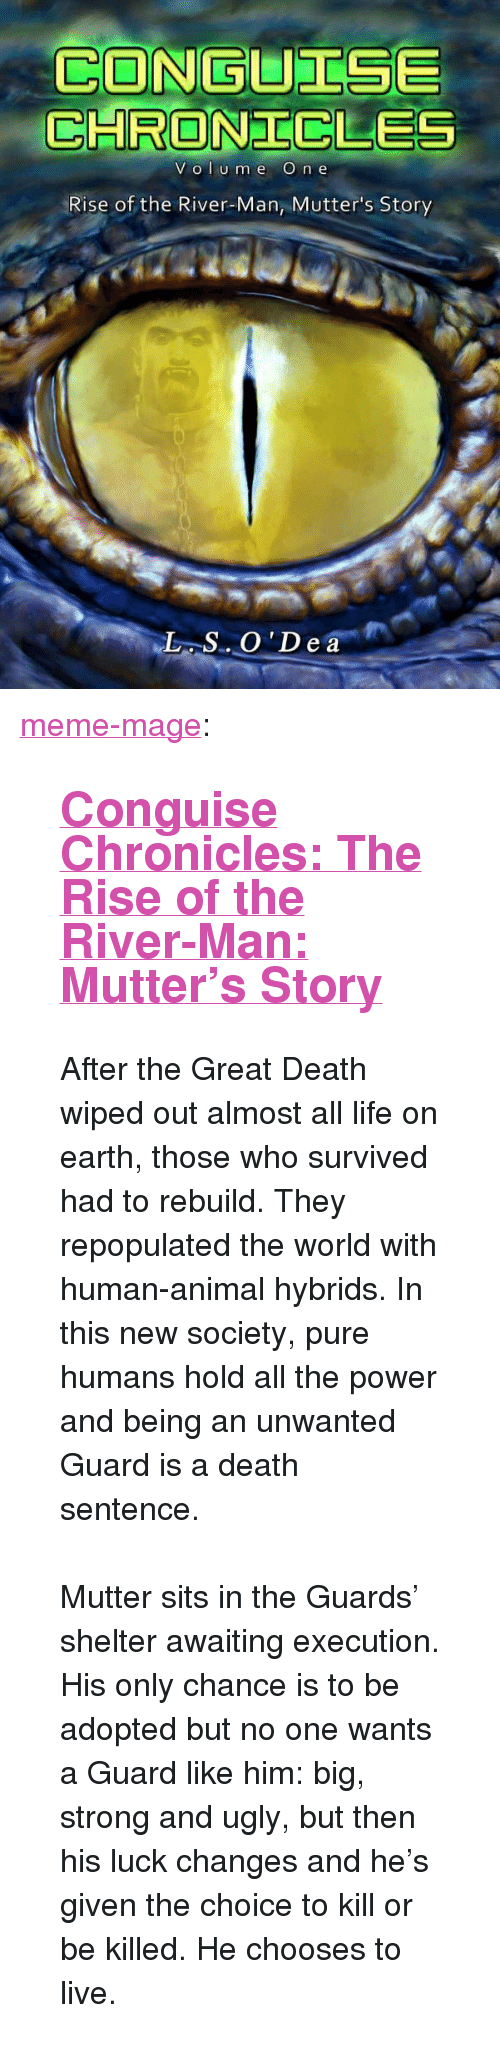 """Amazon, Life, and Meme: CONGUTISE  CHRONICLE  VOI Ume O  n e  Rise of the River-Man, Mutter's Story <p><a class=""""tumblr_blog"""" href=""""http://meme-mage.tumblr.com/post/141519941218"""">meme-mage</a>:</p> <blockquote> <h2><b><a href=""""http://www.amazon.com/gp/product/B014I7M82I"""">  Conguise Chronicles: The Rise of the River-Man: Mutter's Story</a>  </b></h2> <p>  After the Great Death wiped out almost all life on earth, those who survived had to rebuild. They repopulated the world with human-animal hybrids. In this new society, pure humans hold all the power and being an unwanted Guard is a death sentence. <br/><br/>Mutter sits in the Guards' shelter awaiting execution. His only chance is to be adopted but no one wants a Guard like him: big, strong and ugly, but then his luck changes and he's given the choice to kill or be killed. He chooses to live.   <br/></p> </blockquote>"""